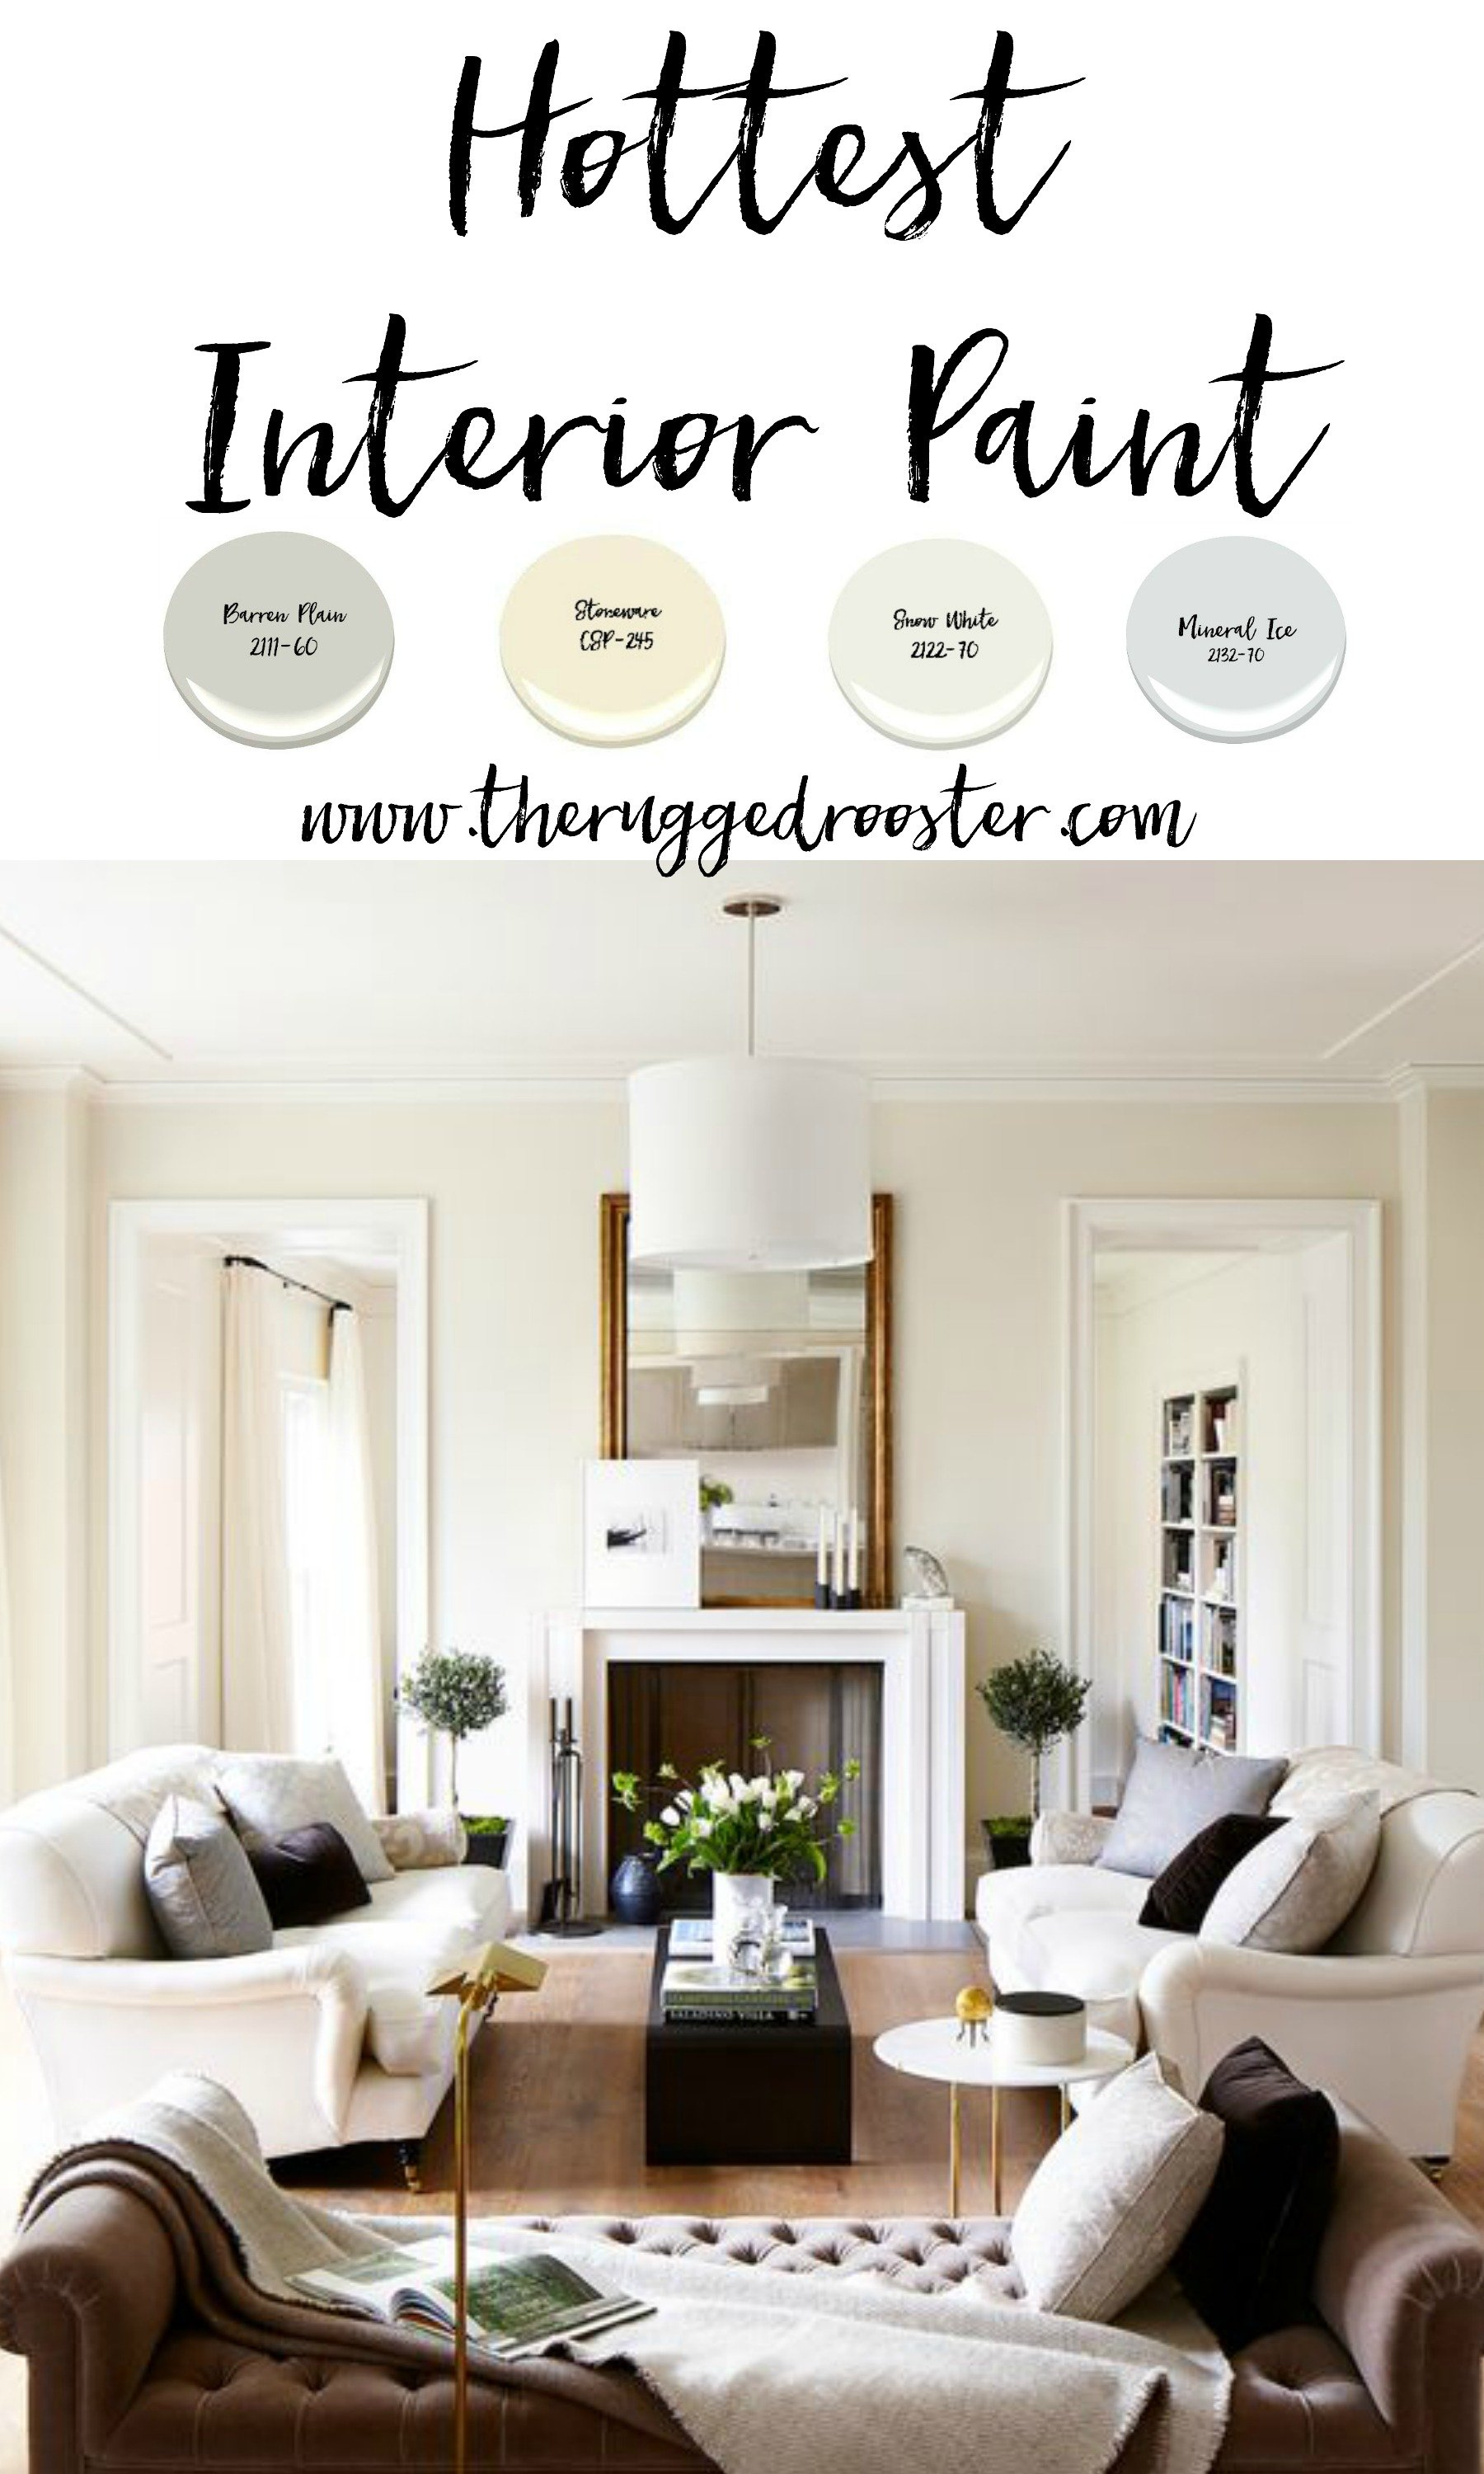 Hottest Interior Paint Colors, Where TO Buy And Paint Chips  Www.whitepicketfarmhouse.com